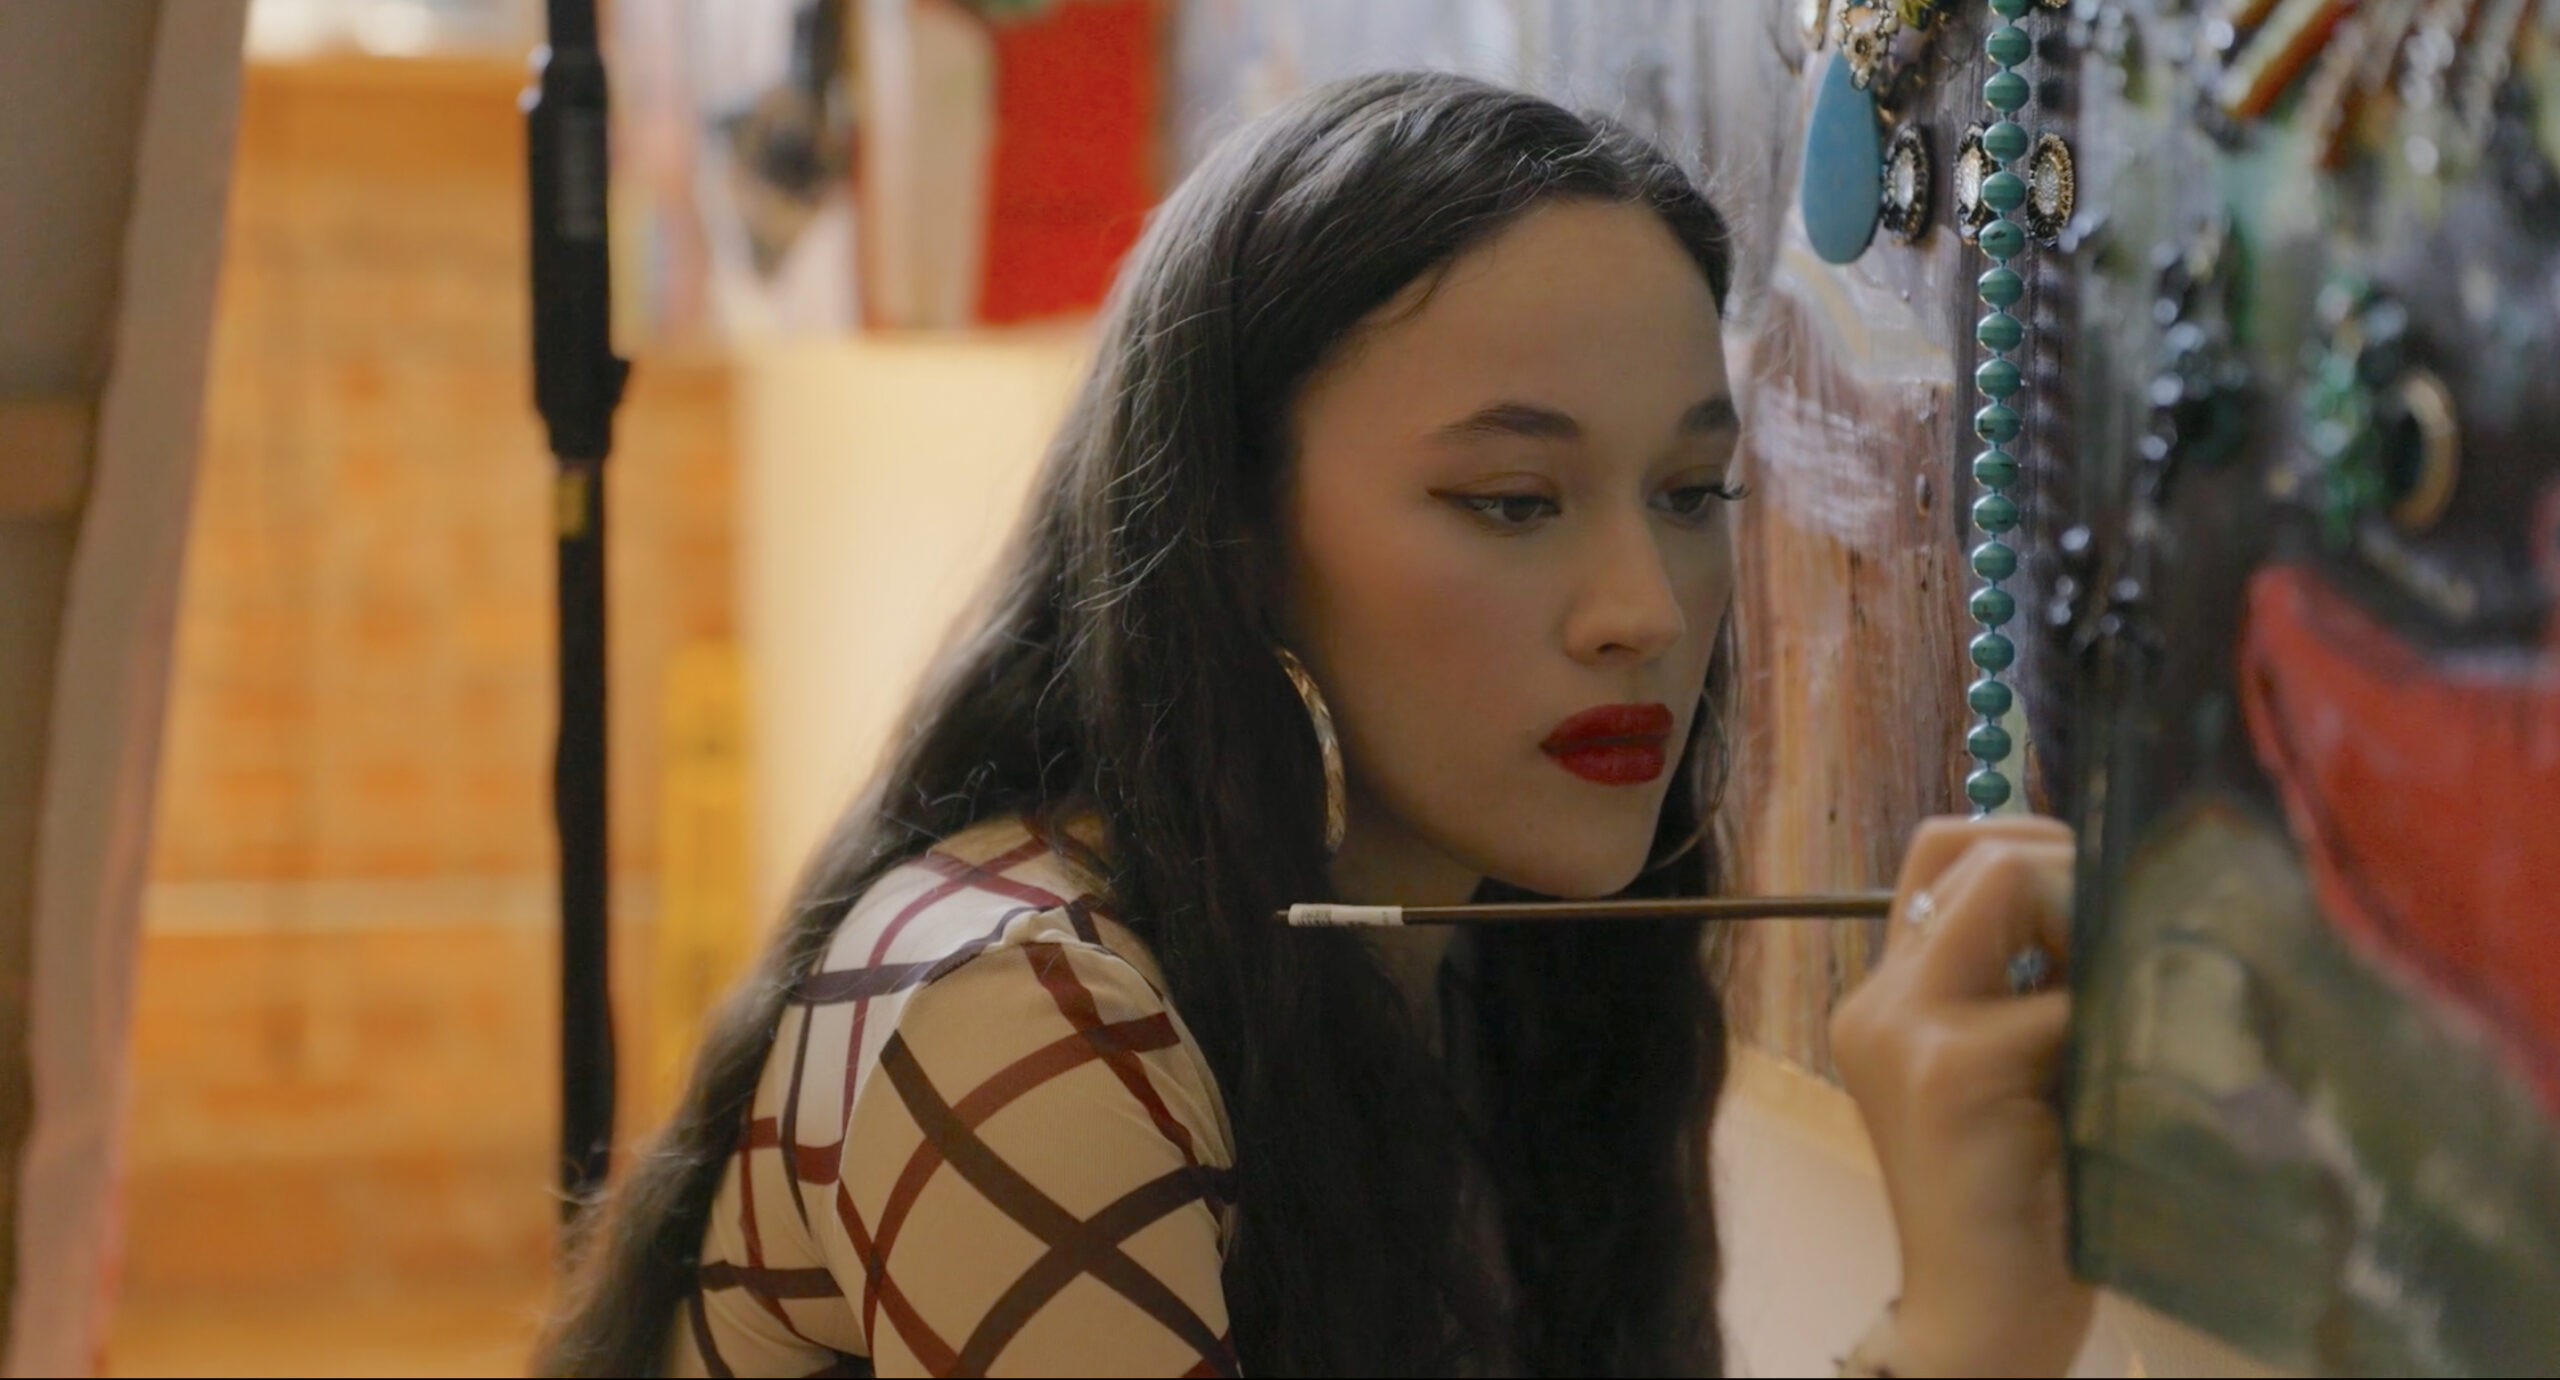 Artist Gisela McDaniel as seen in Kelcey Edwards' documentary The Art of Making It! Image courtesy of Wischful thinking Productions